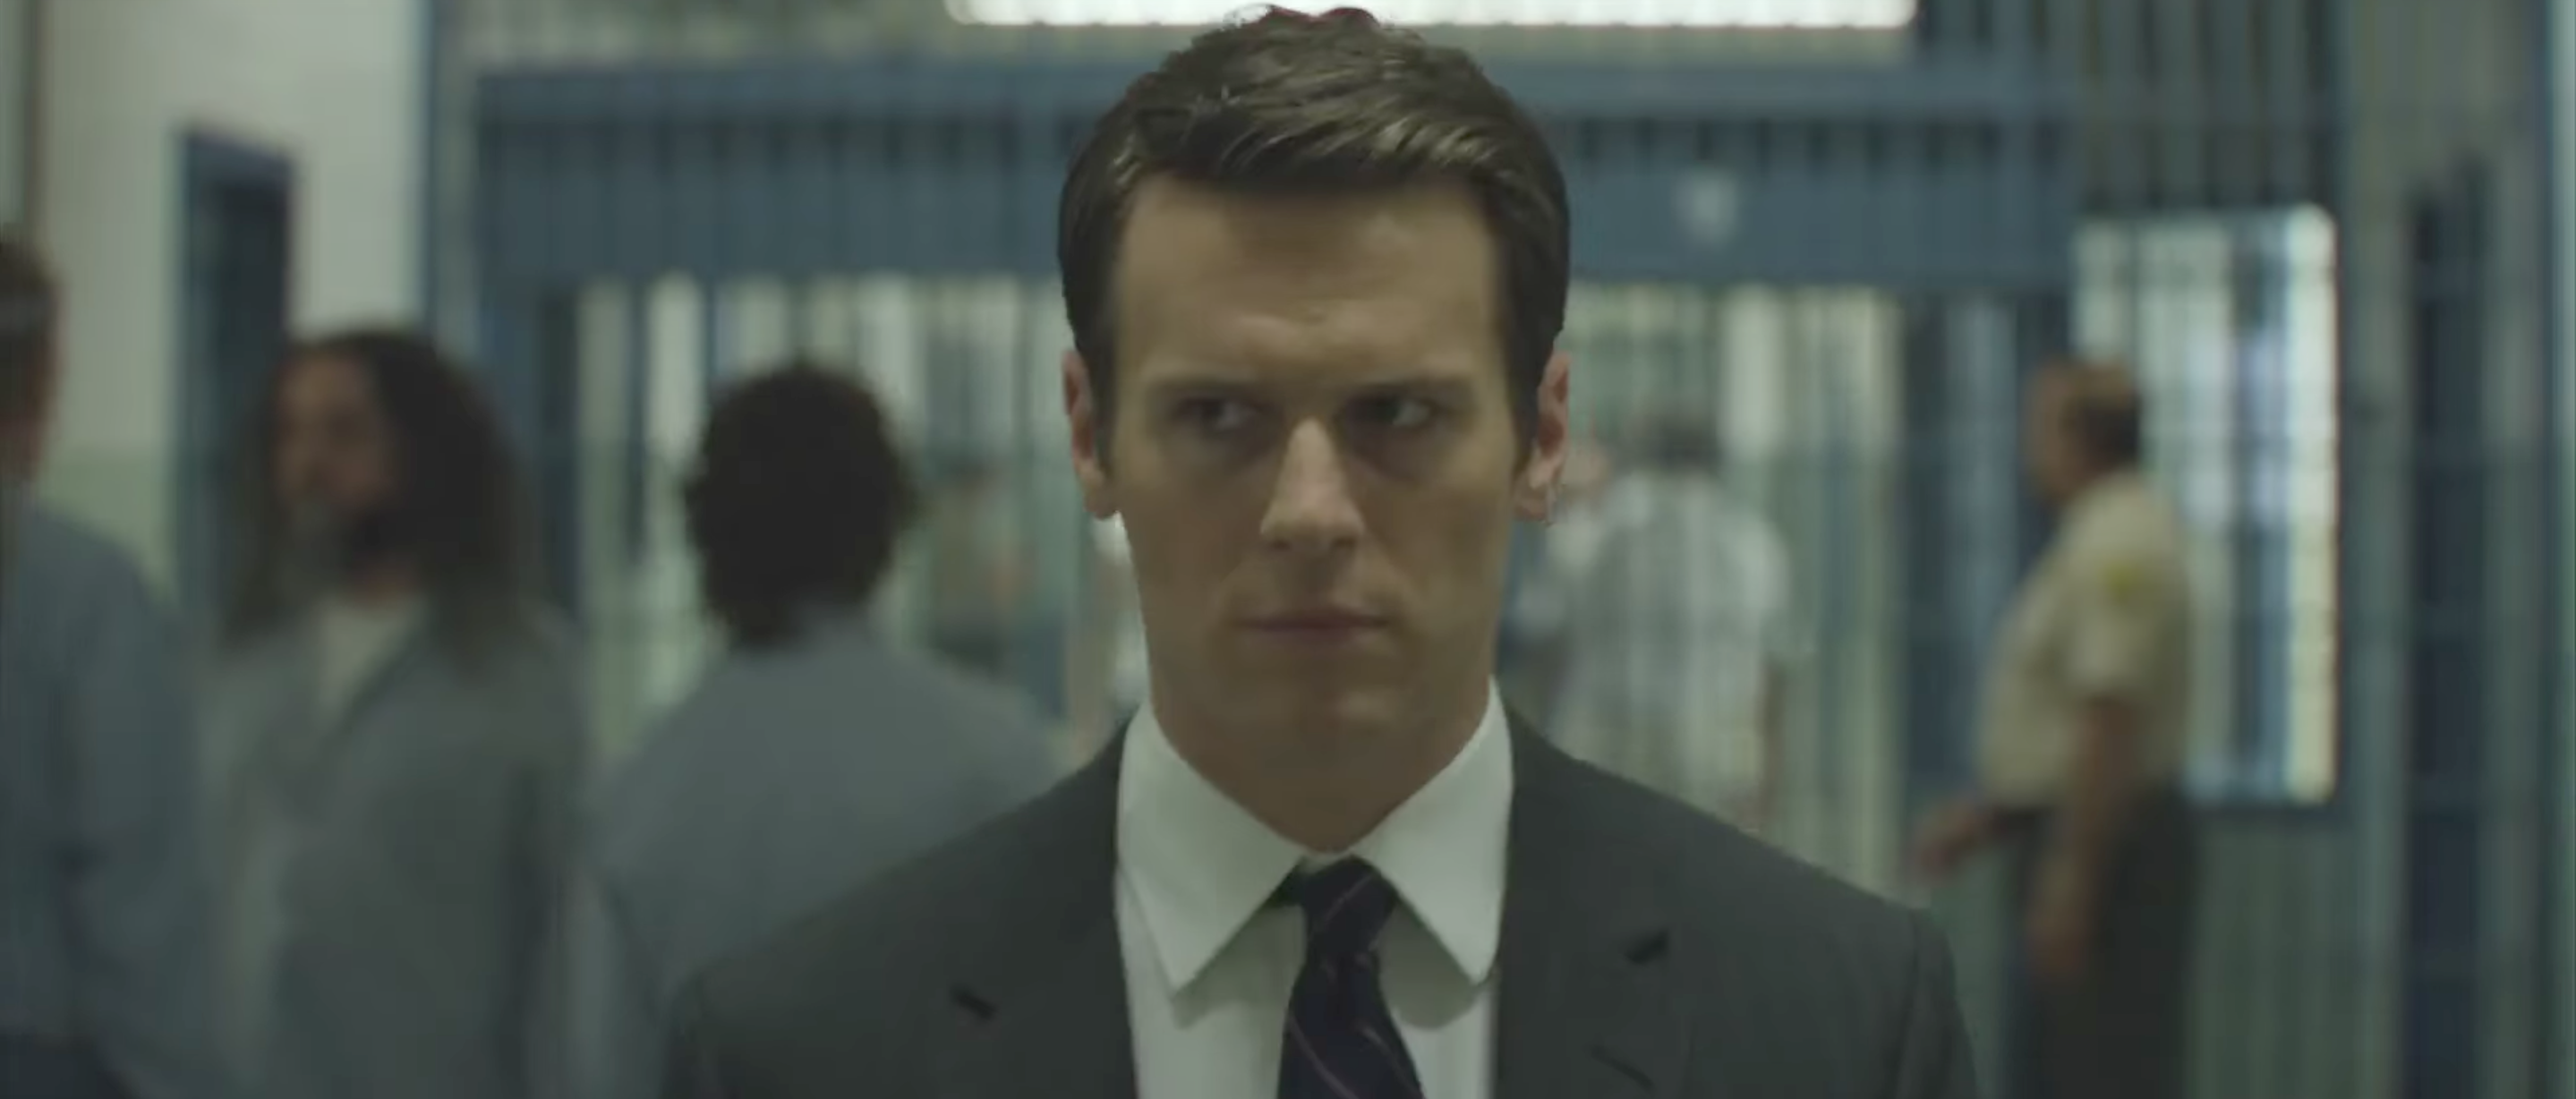 What Mindhunter gets so right that other true crime shows get wrong